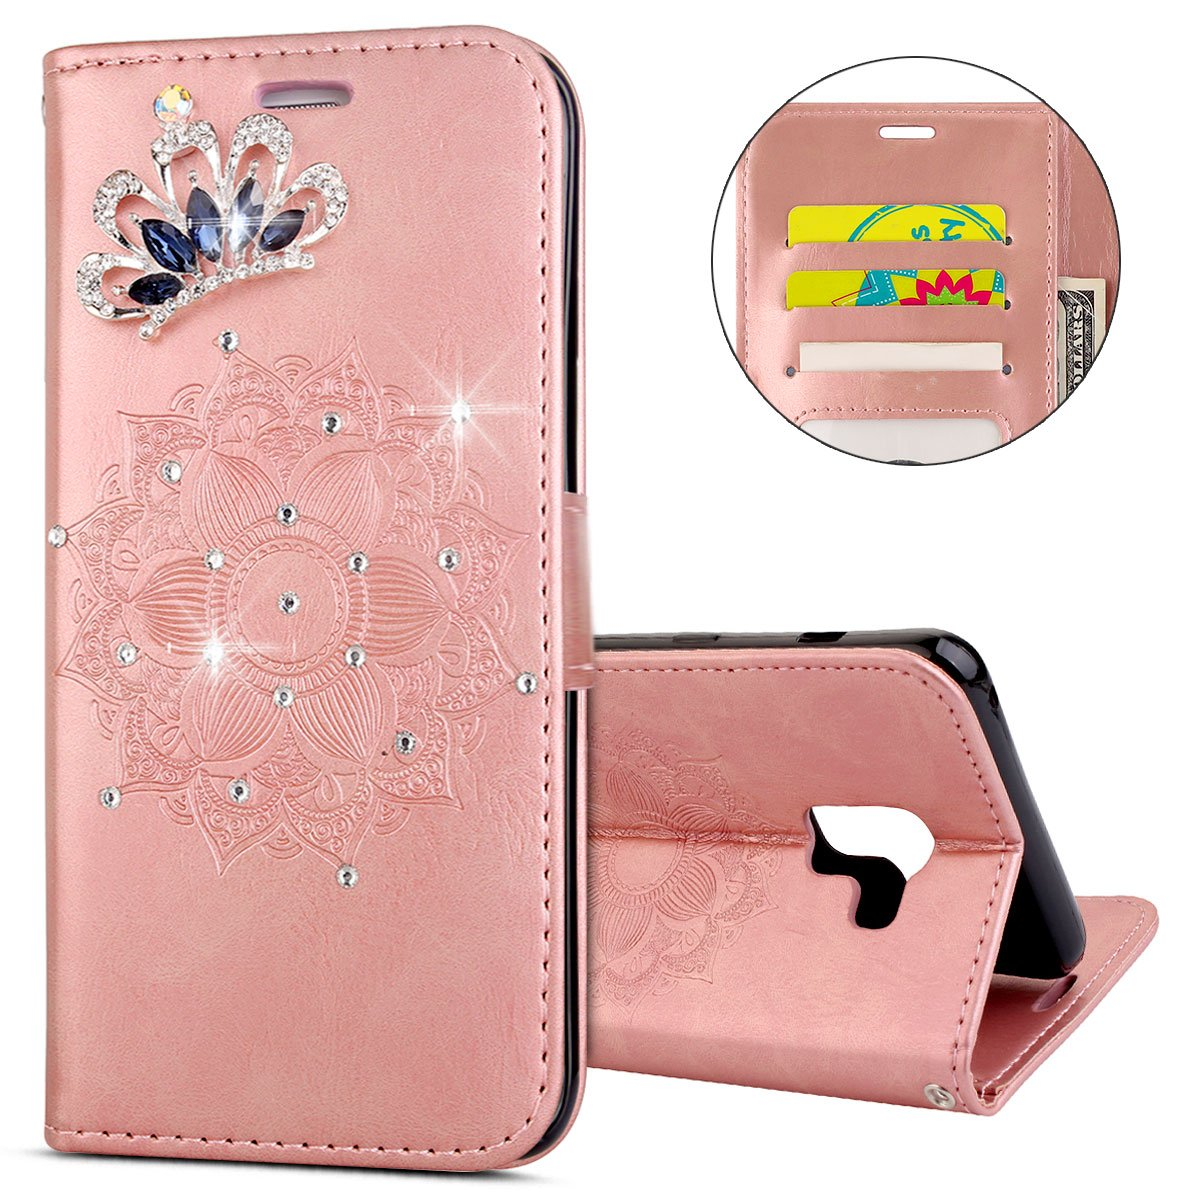 IKASEFU Galaxy A7 Plus 2018,A8 Plus 2018 Case,Clear Crown Rhinestone Bling Glitter Wallet Card Holder Mandala Pu Leather Magnetic Flip Protective Cover for Samsung A7 Plus 2018/A8 Plus 2018,Rosa Gold